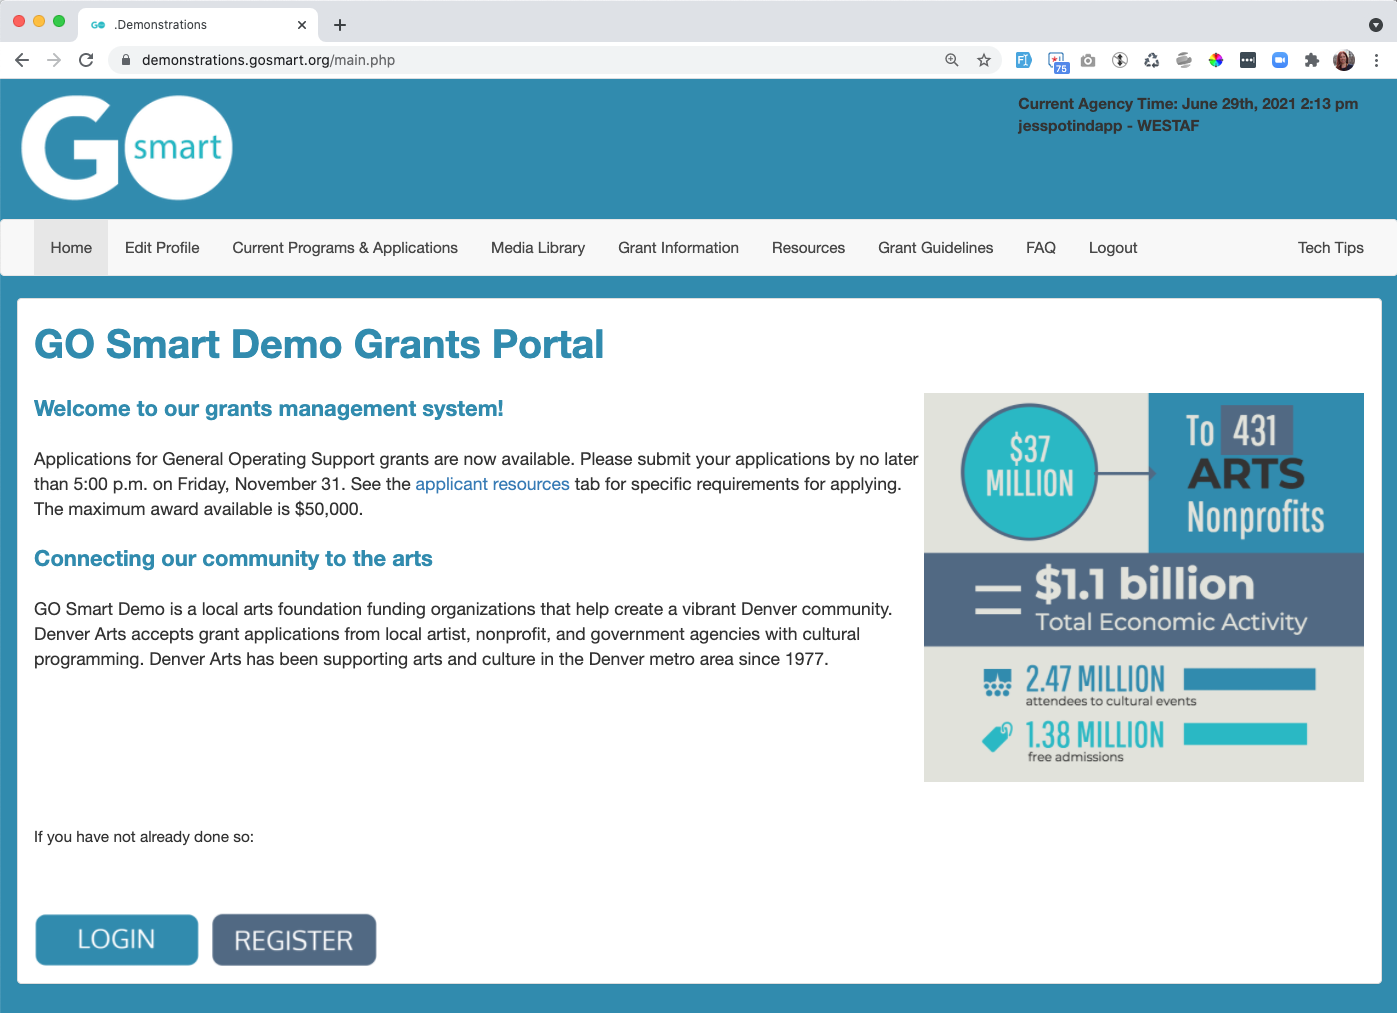 Screenshot of Demonstrations Agency home page